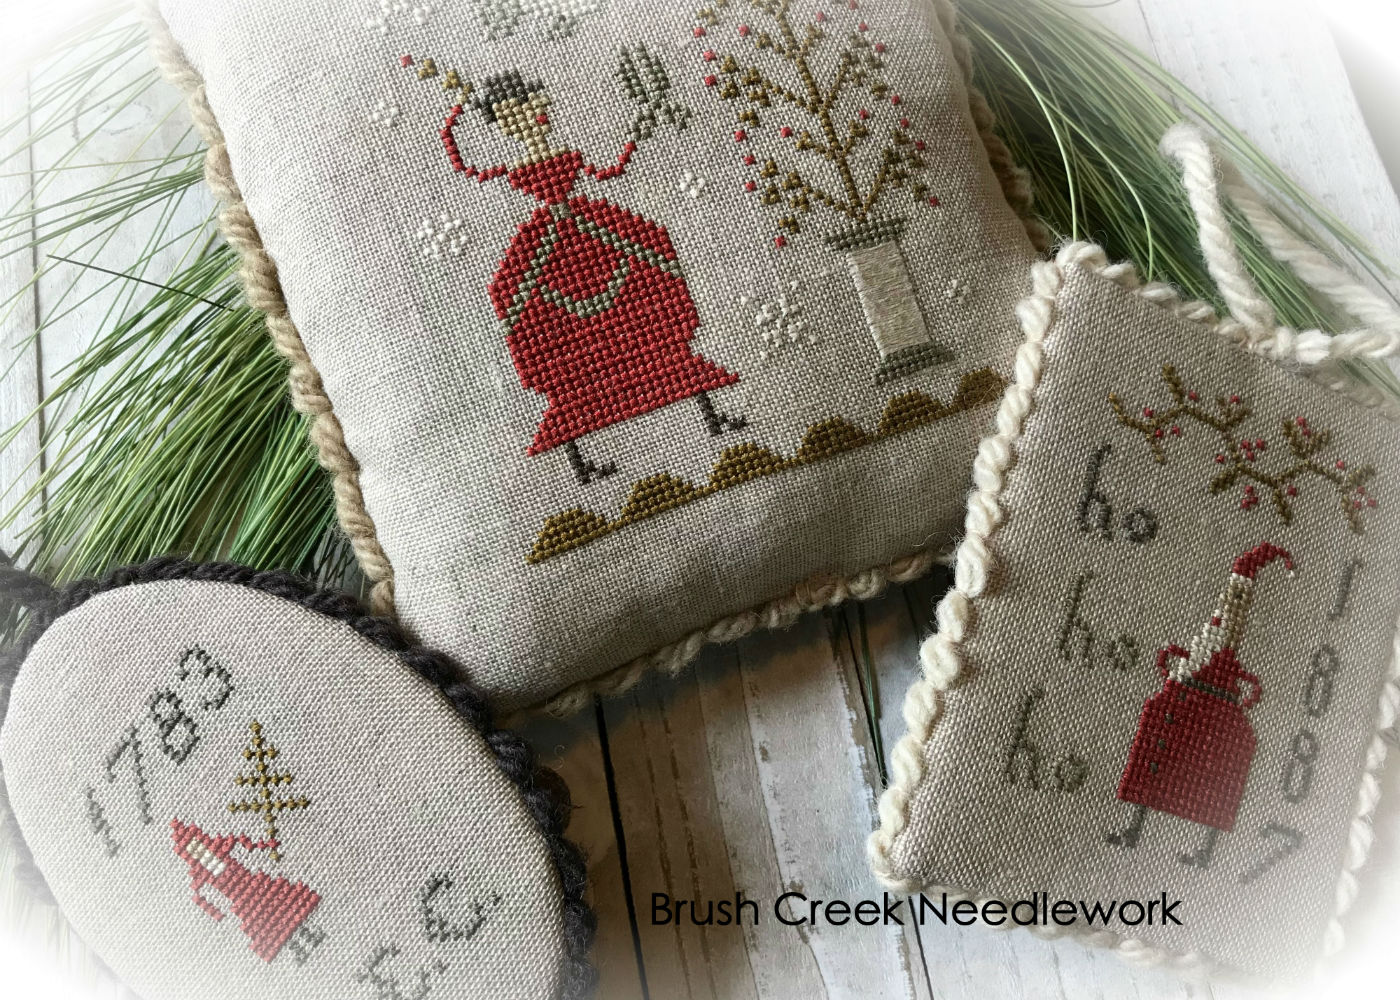 Brush Creek Needlework